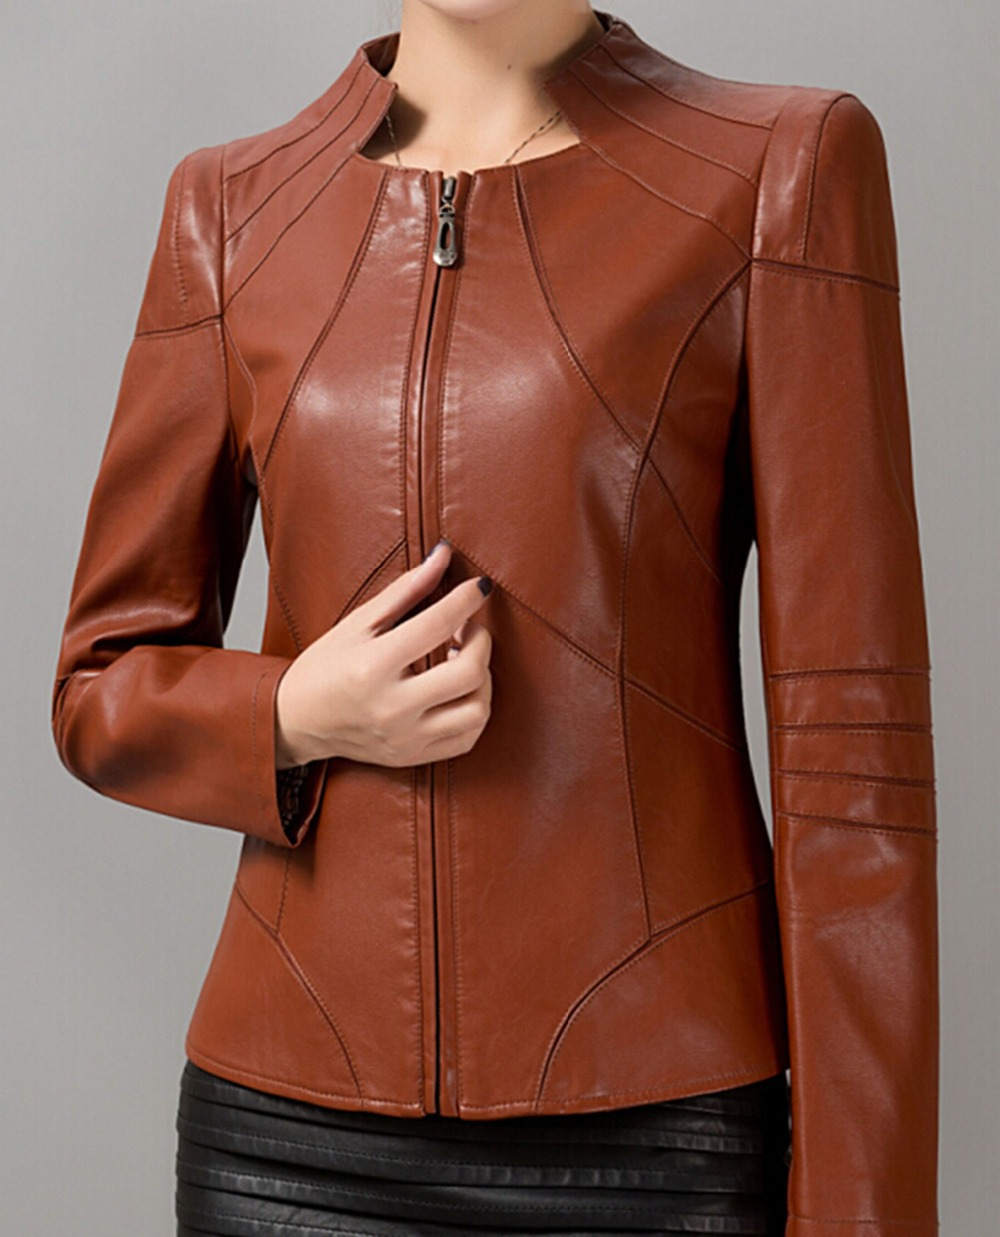 """Women""""s casual brown jackets - New releases in the fashion world ..."""